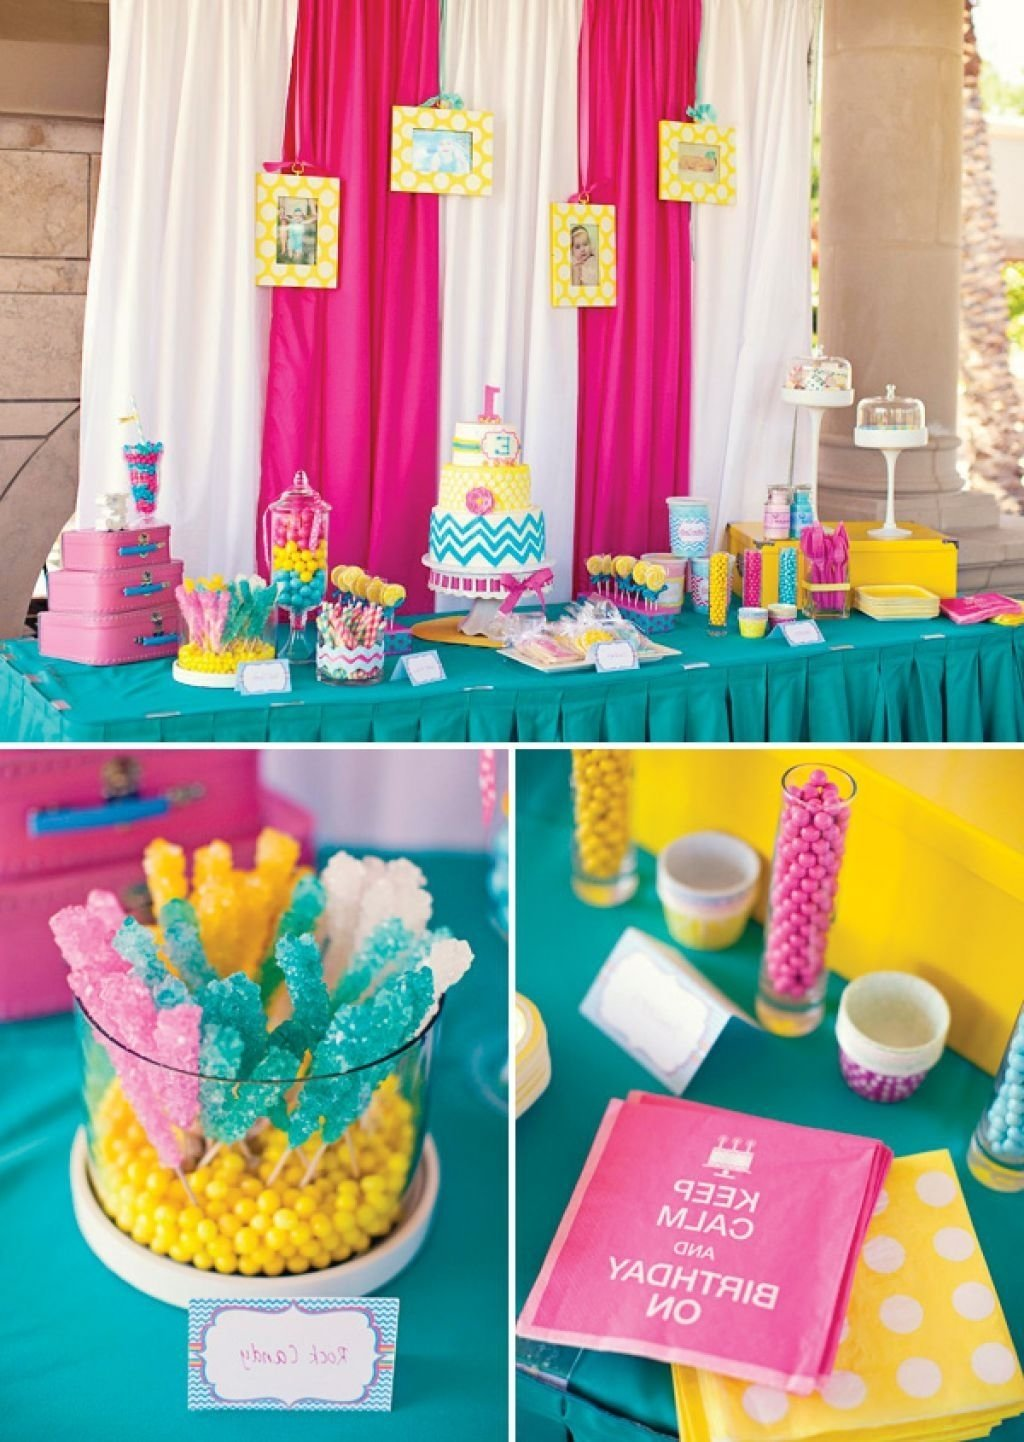 10 Unique Birthday Party Ideas For One Year Old Outdoor Decorations Google Search Madeline